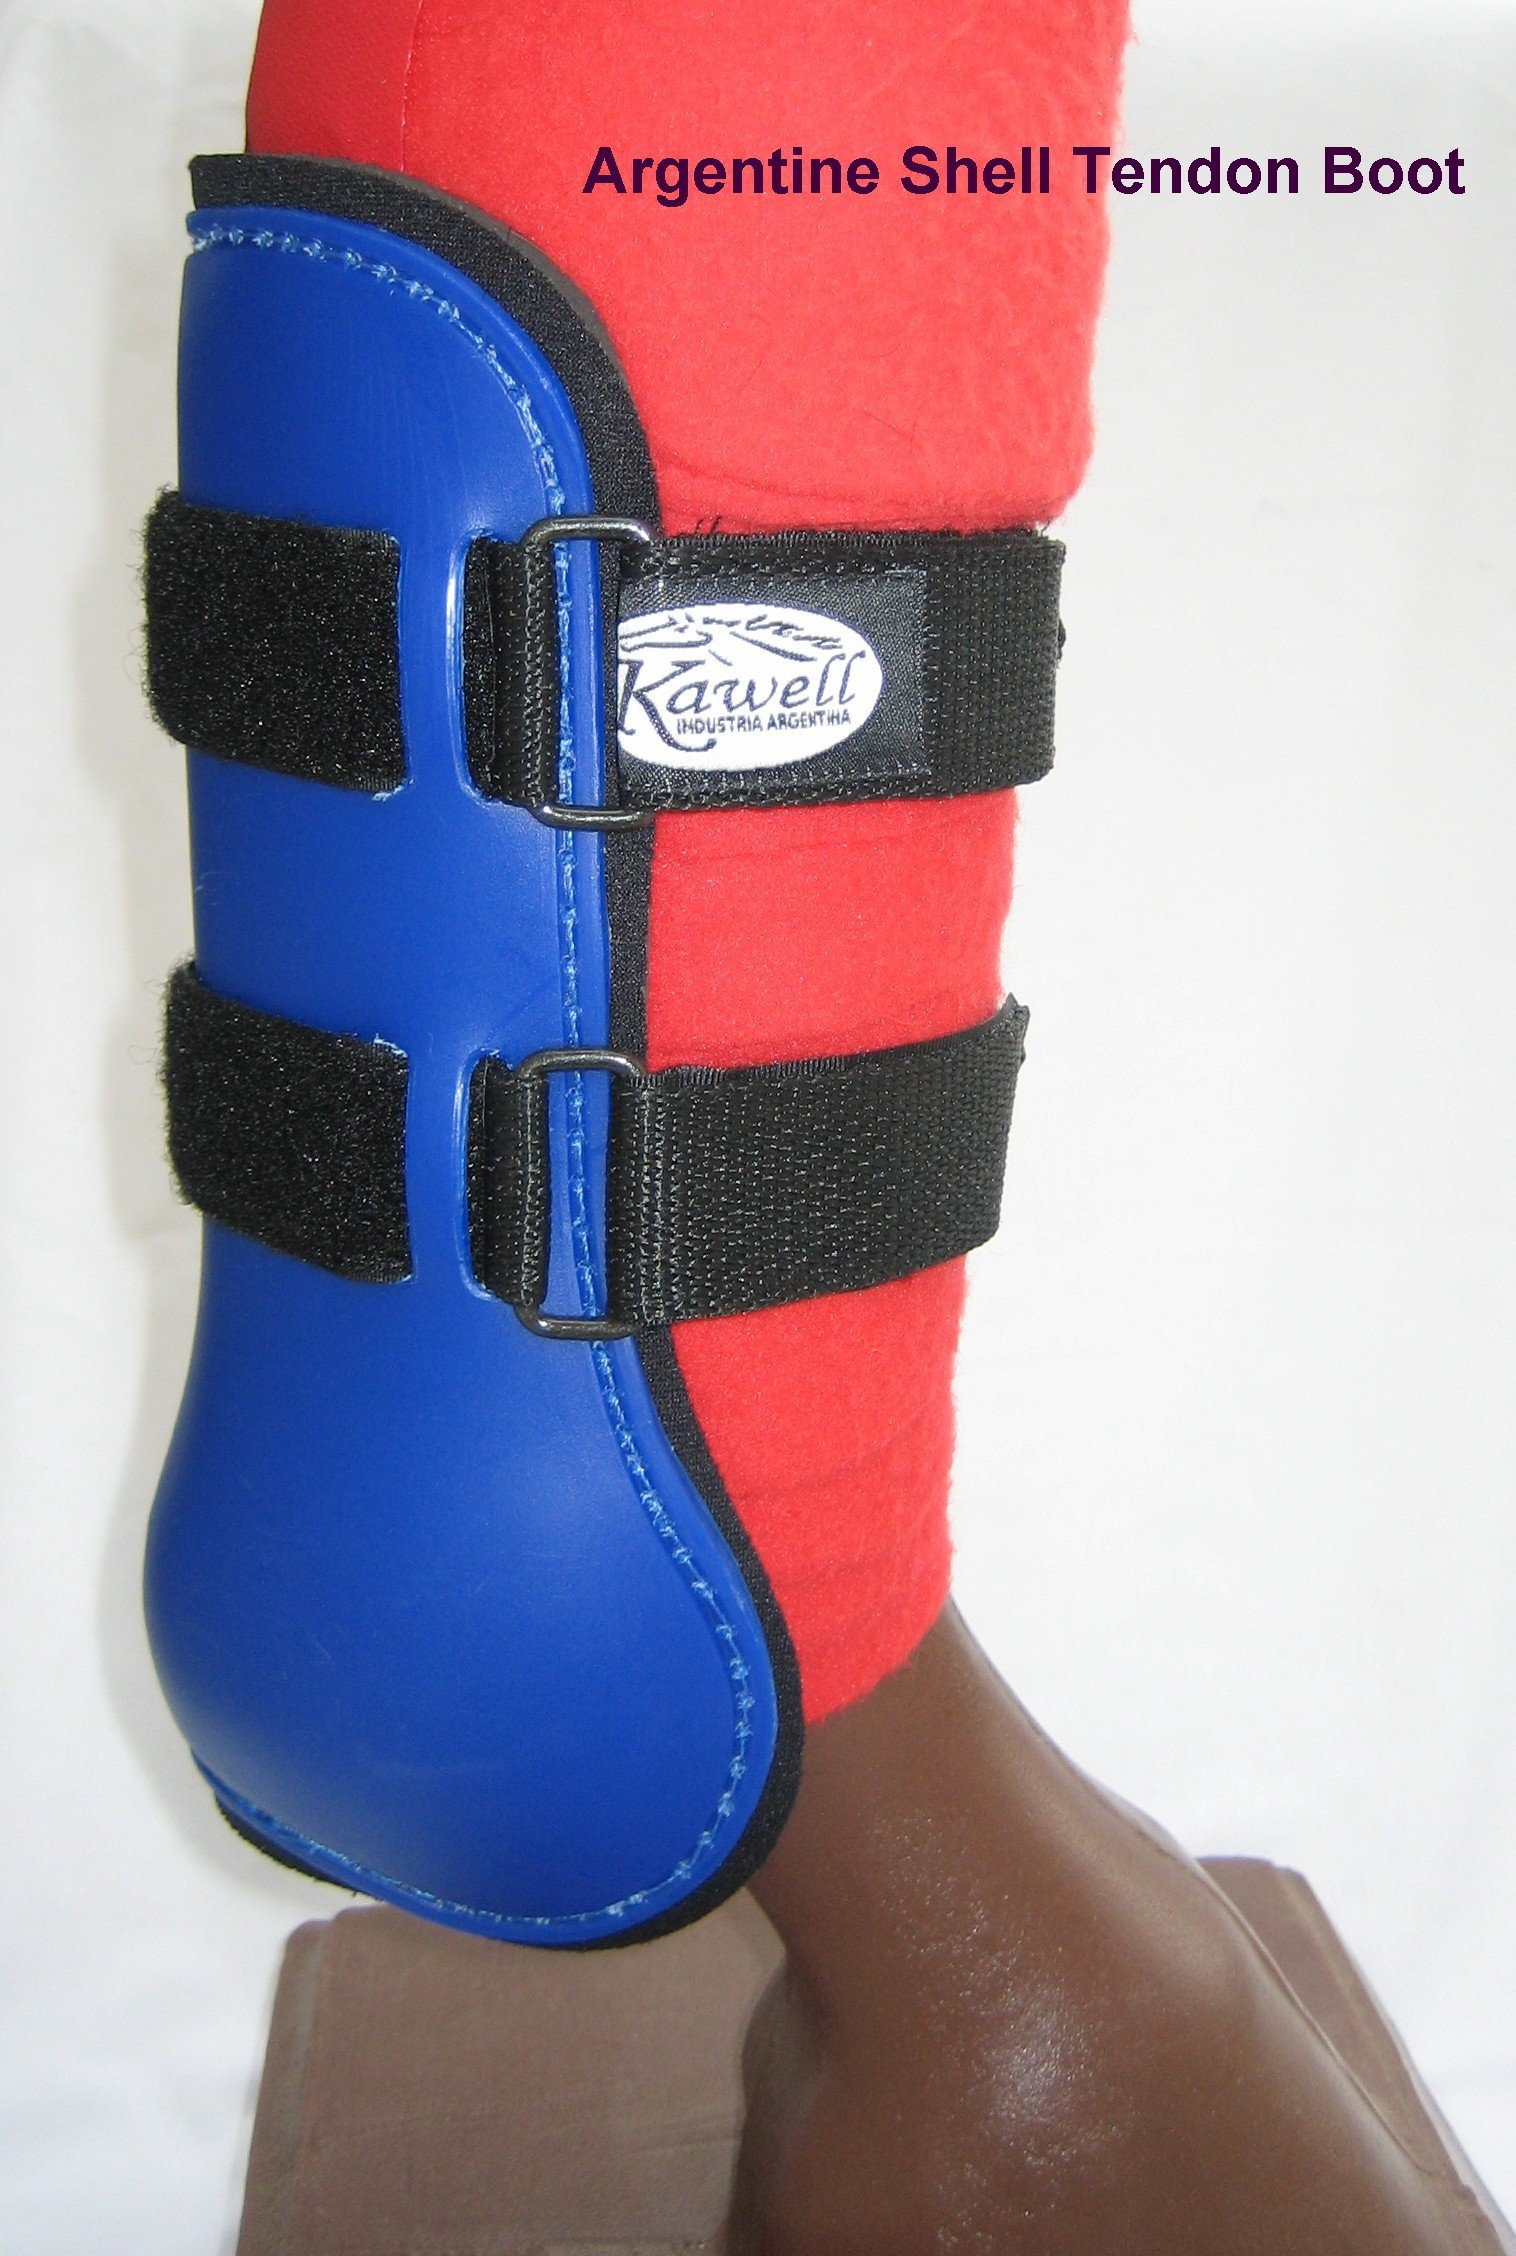 Shell Tendon Boots